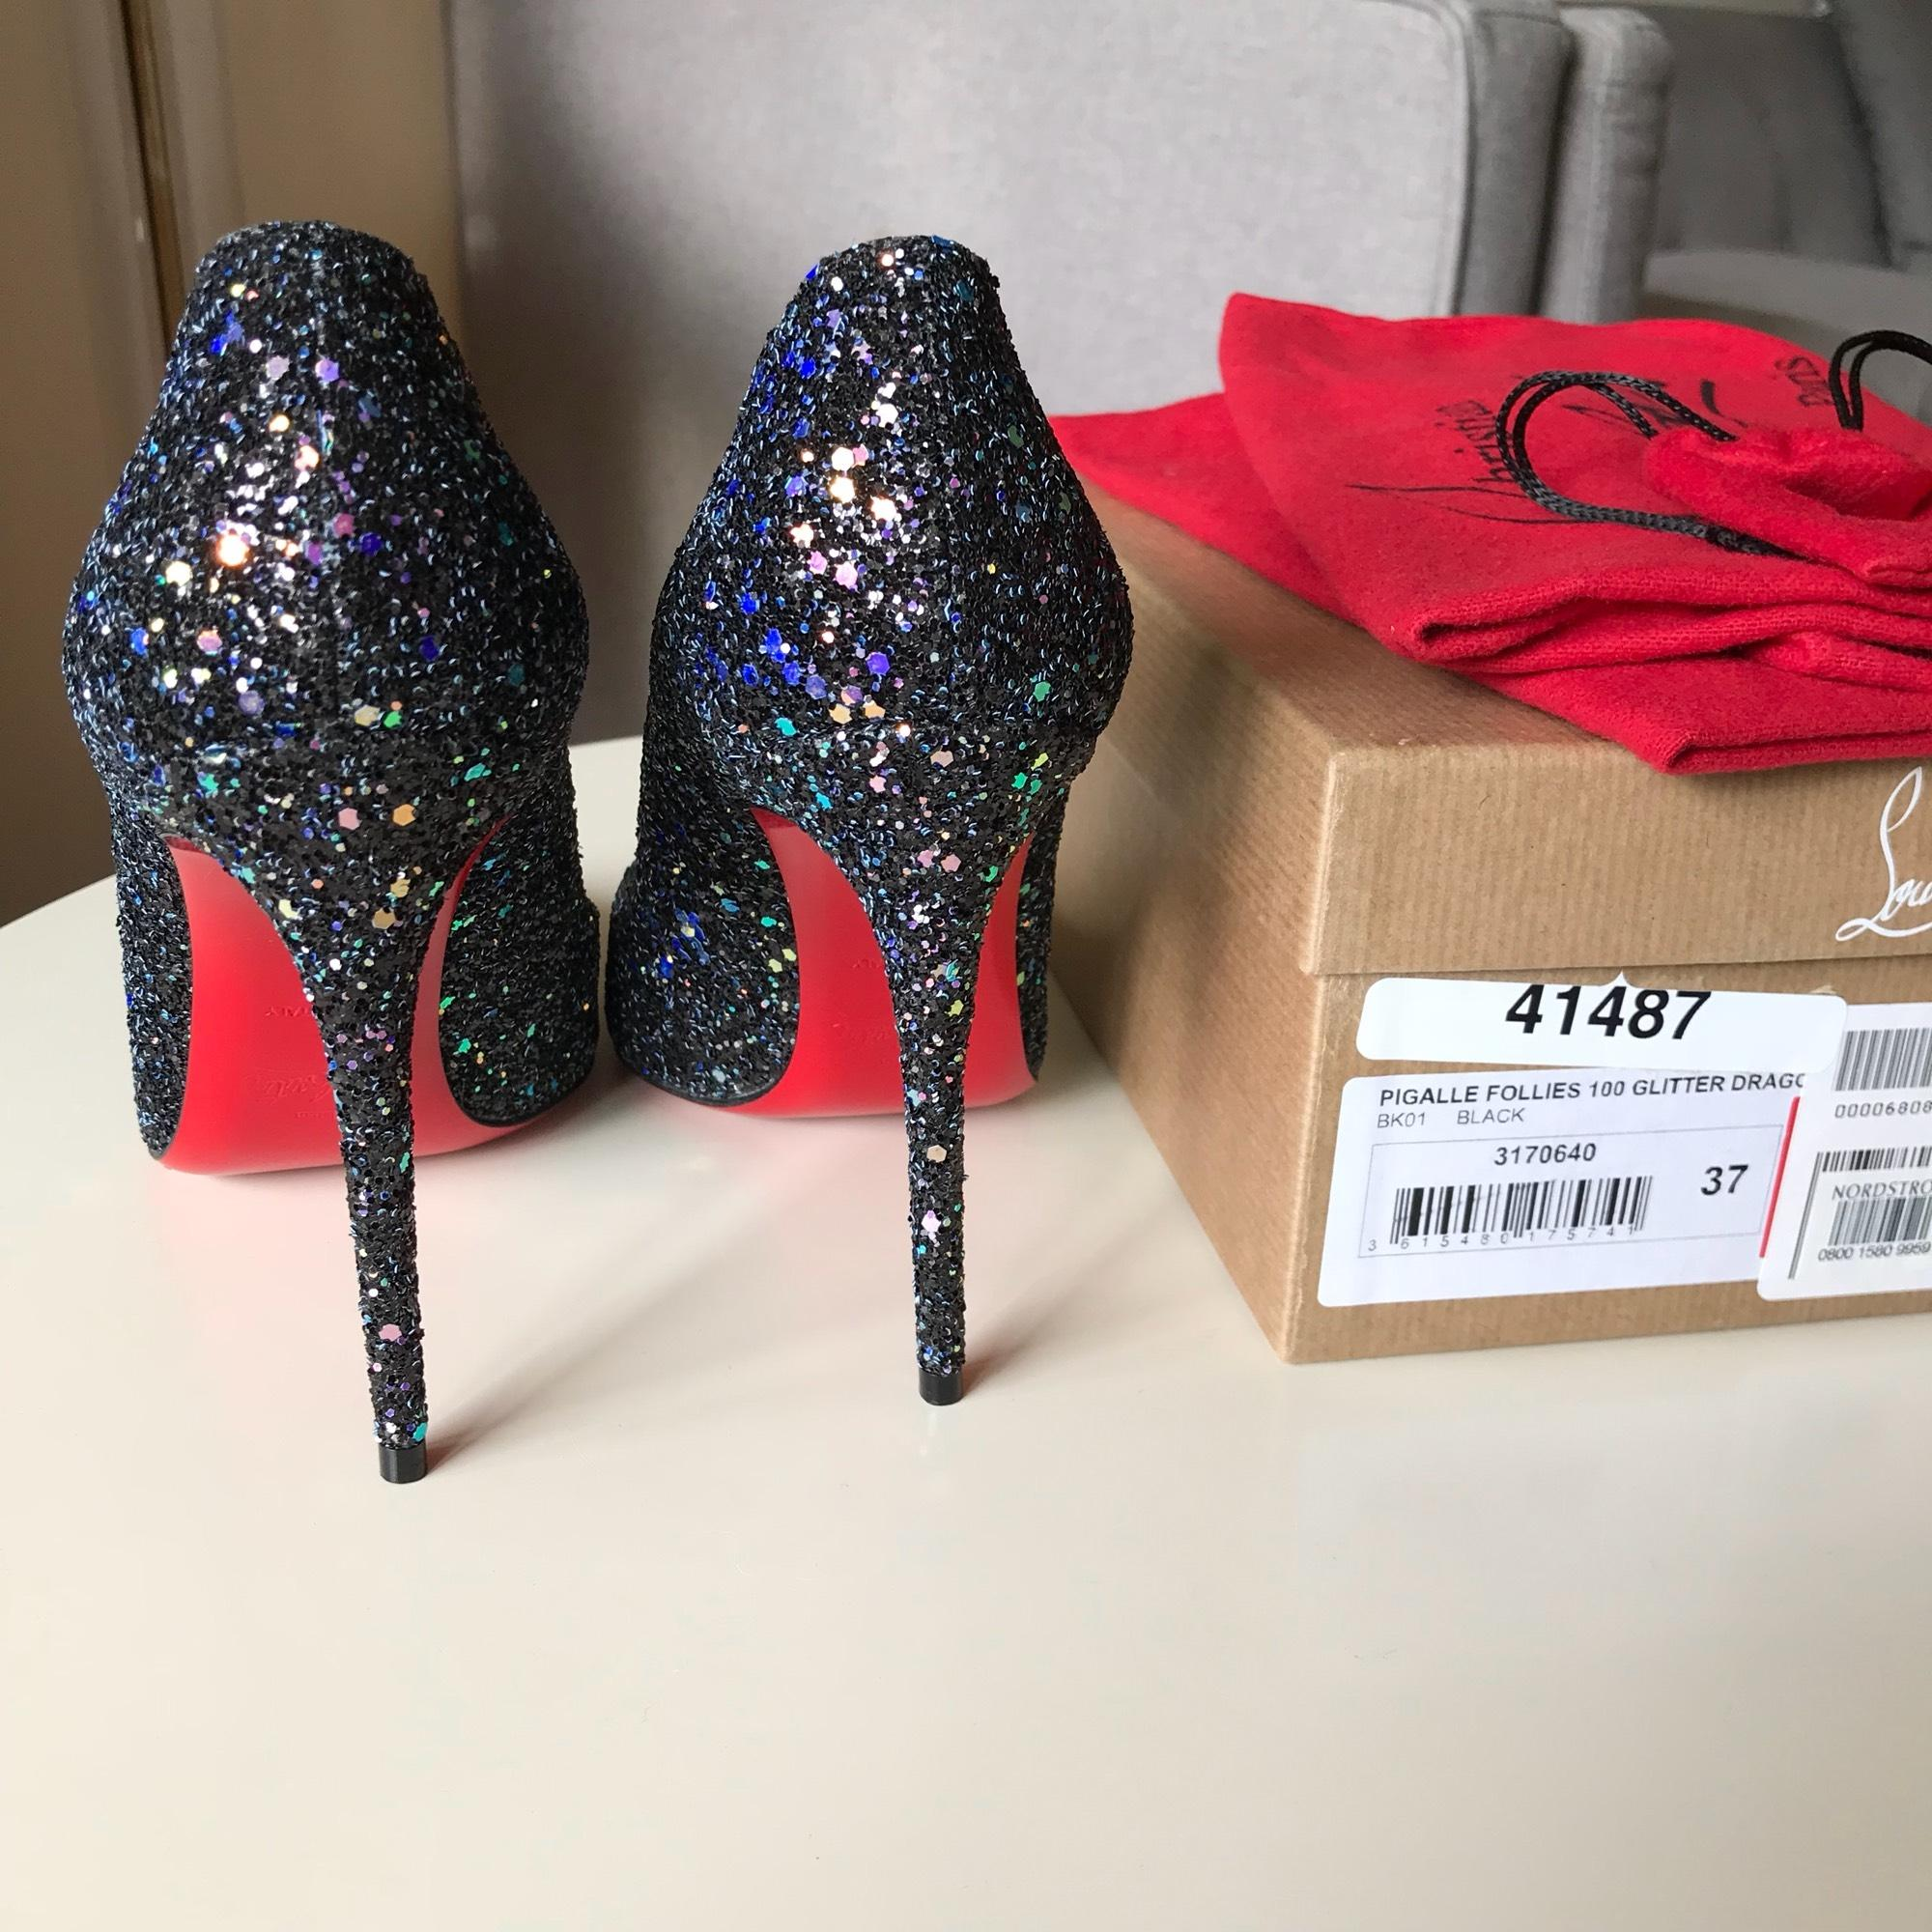 christian louboutin ue pigalle hawaii spike pompes taille ue louboutin 37,5 (environ 7,5) ordinaires (m, b) a9dbd4